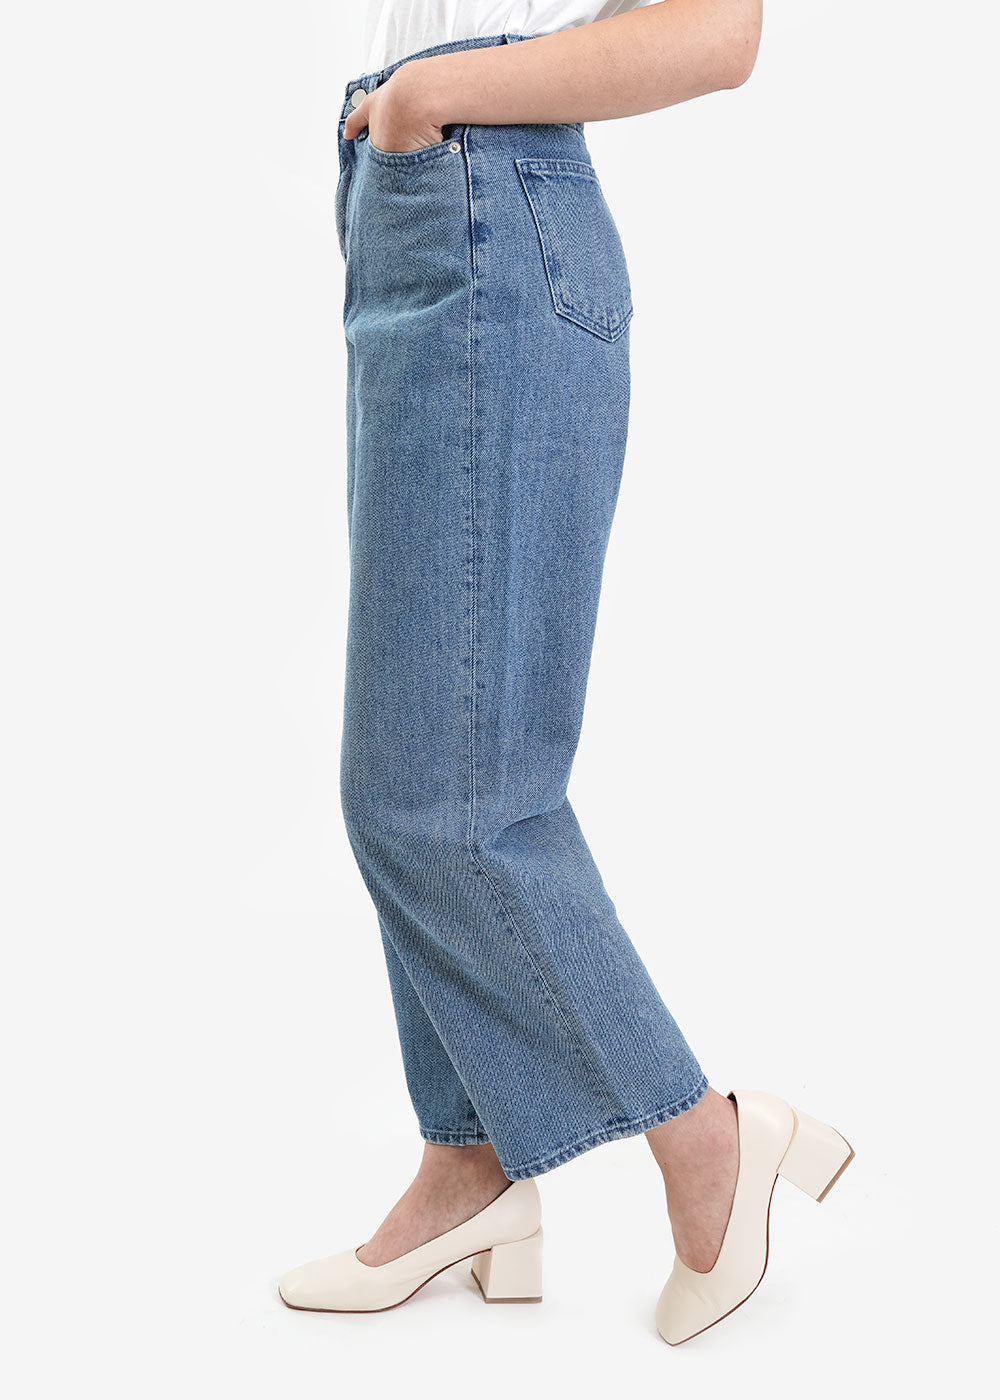 Wide Fit Denim Jeans - New Classics Studios